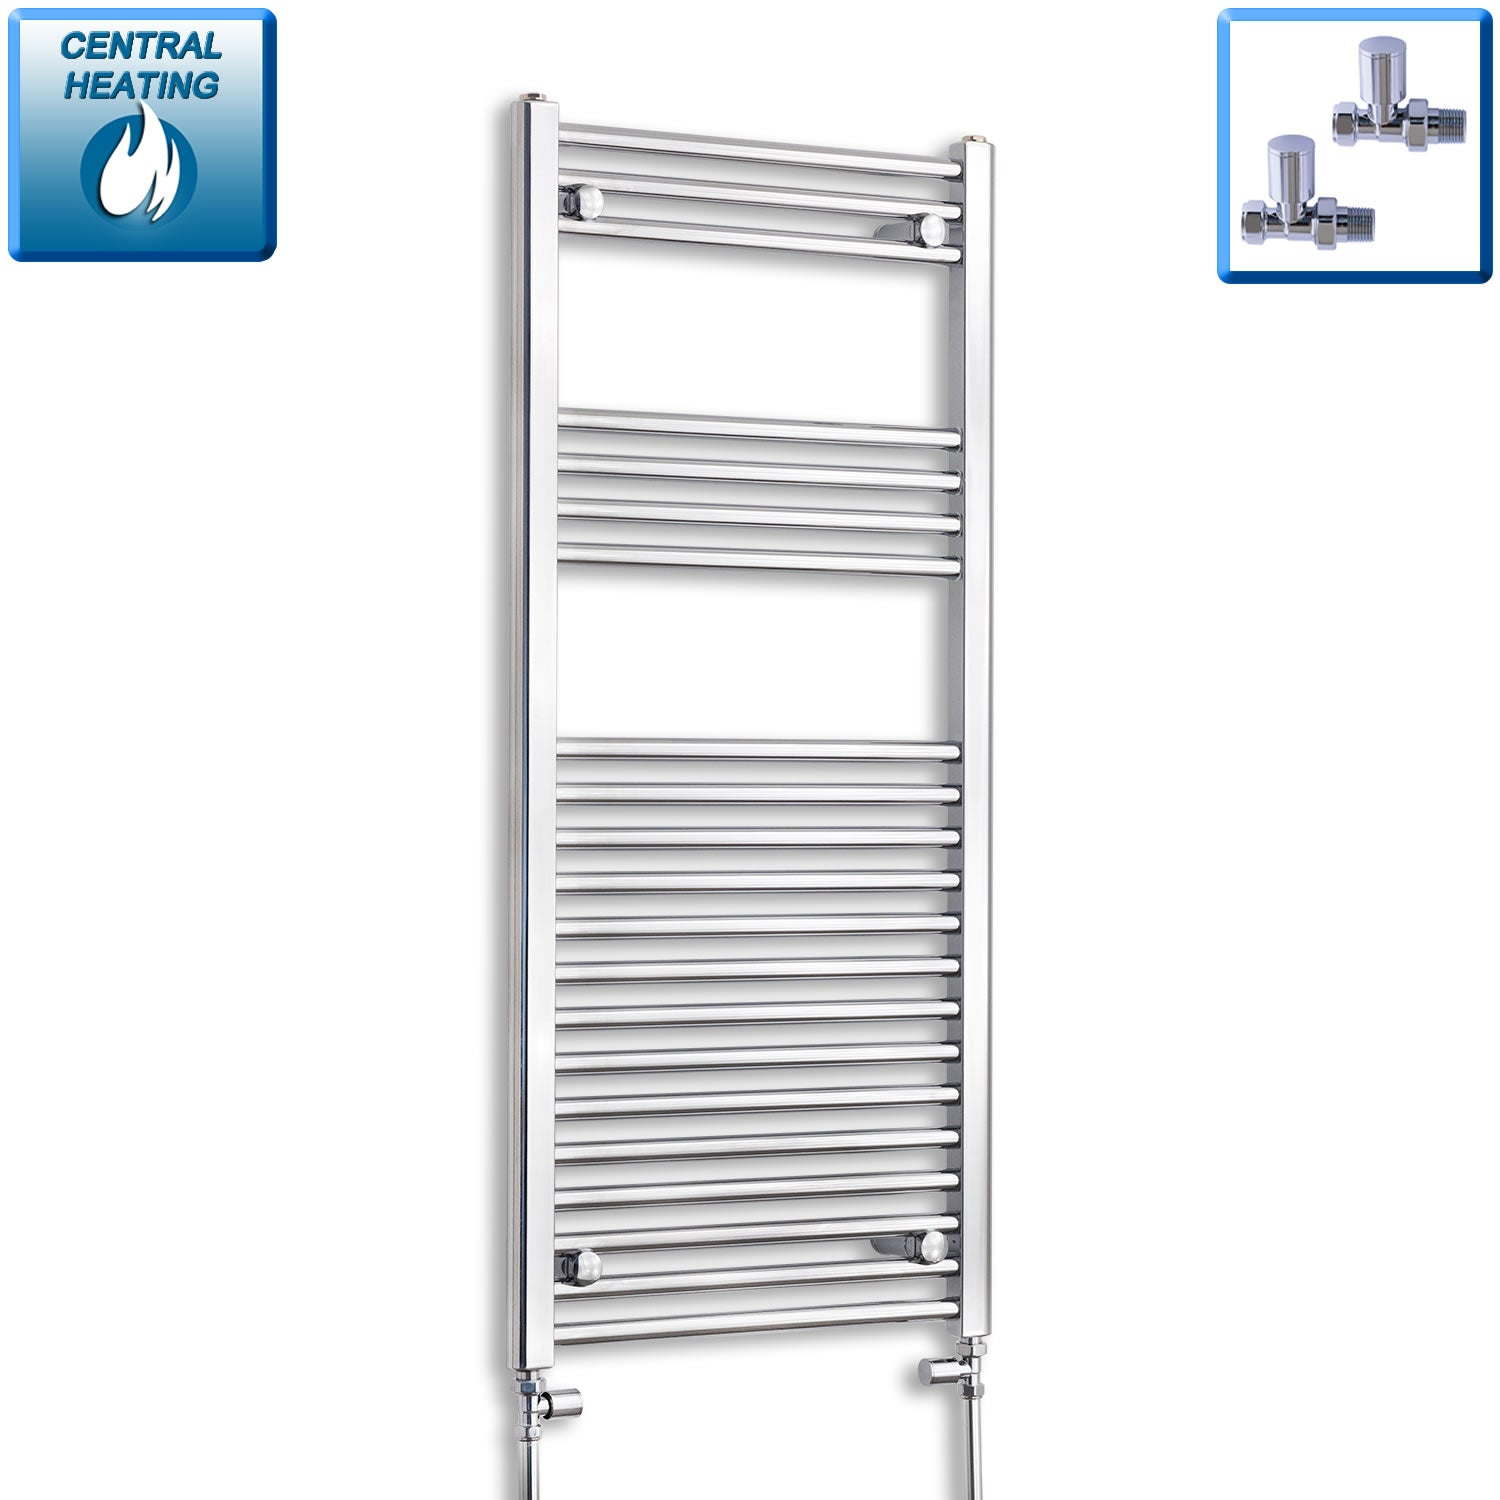 500mm Wide 1100mm High Chrome Towel Rail Radiator With Straight Valve